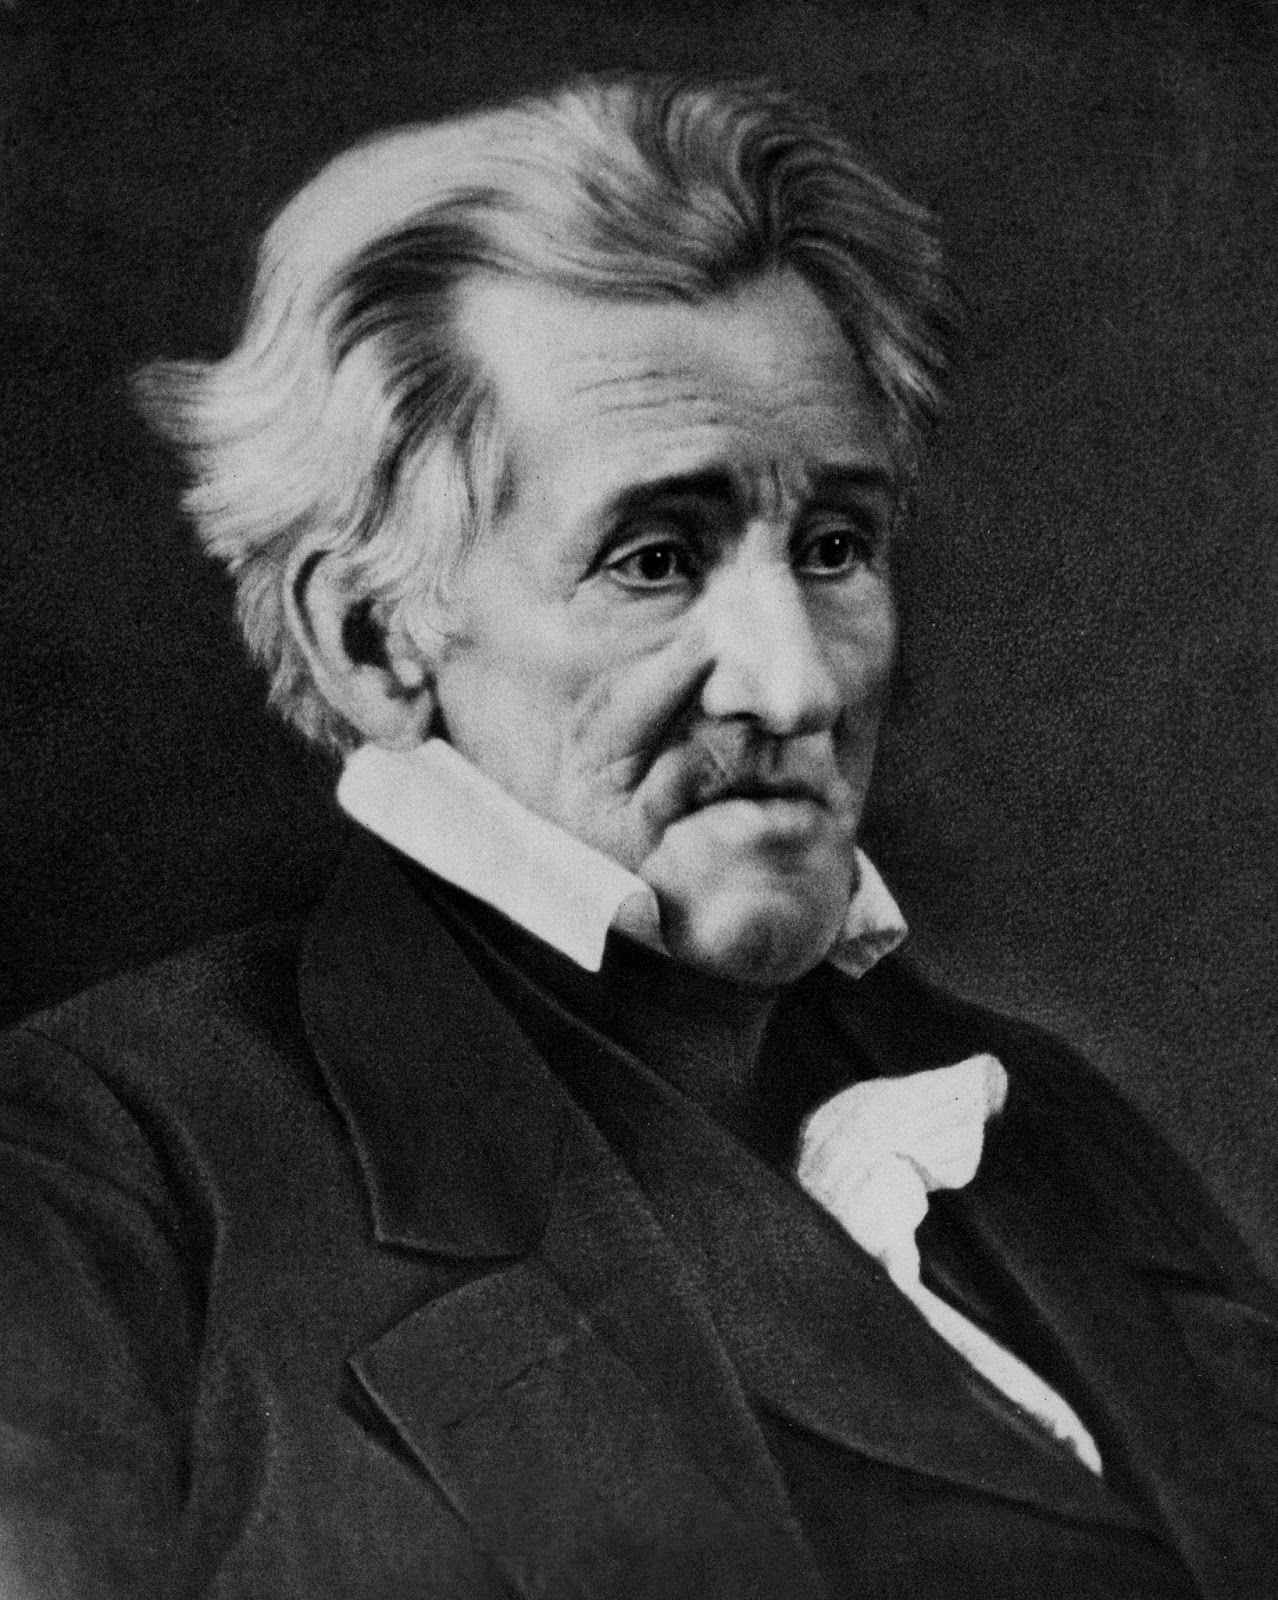 president jackson Andrew jackson (15 march 1767 – 8 june 1845) was the seventh president of  the united states of america (1829-1837), regarded as a hero for his actions in.